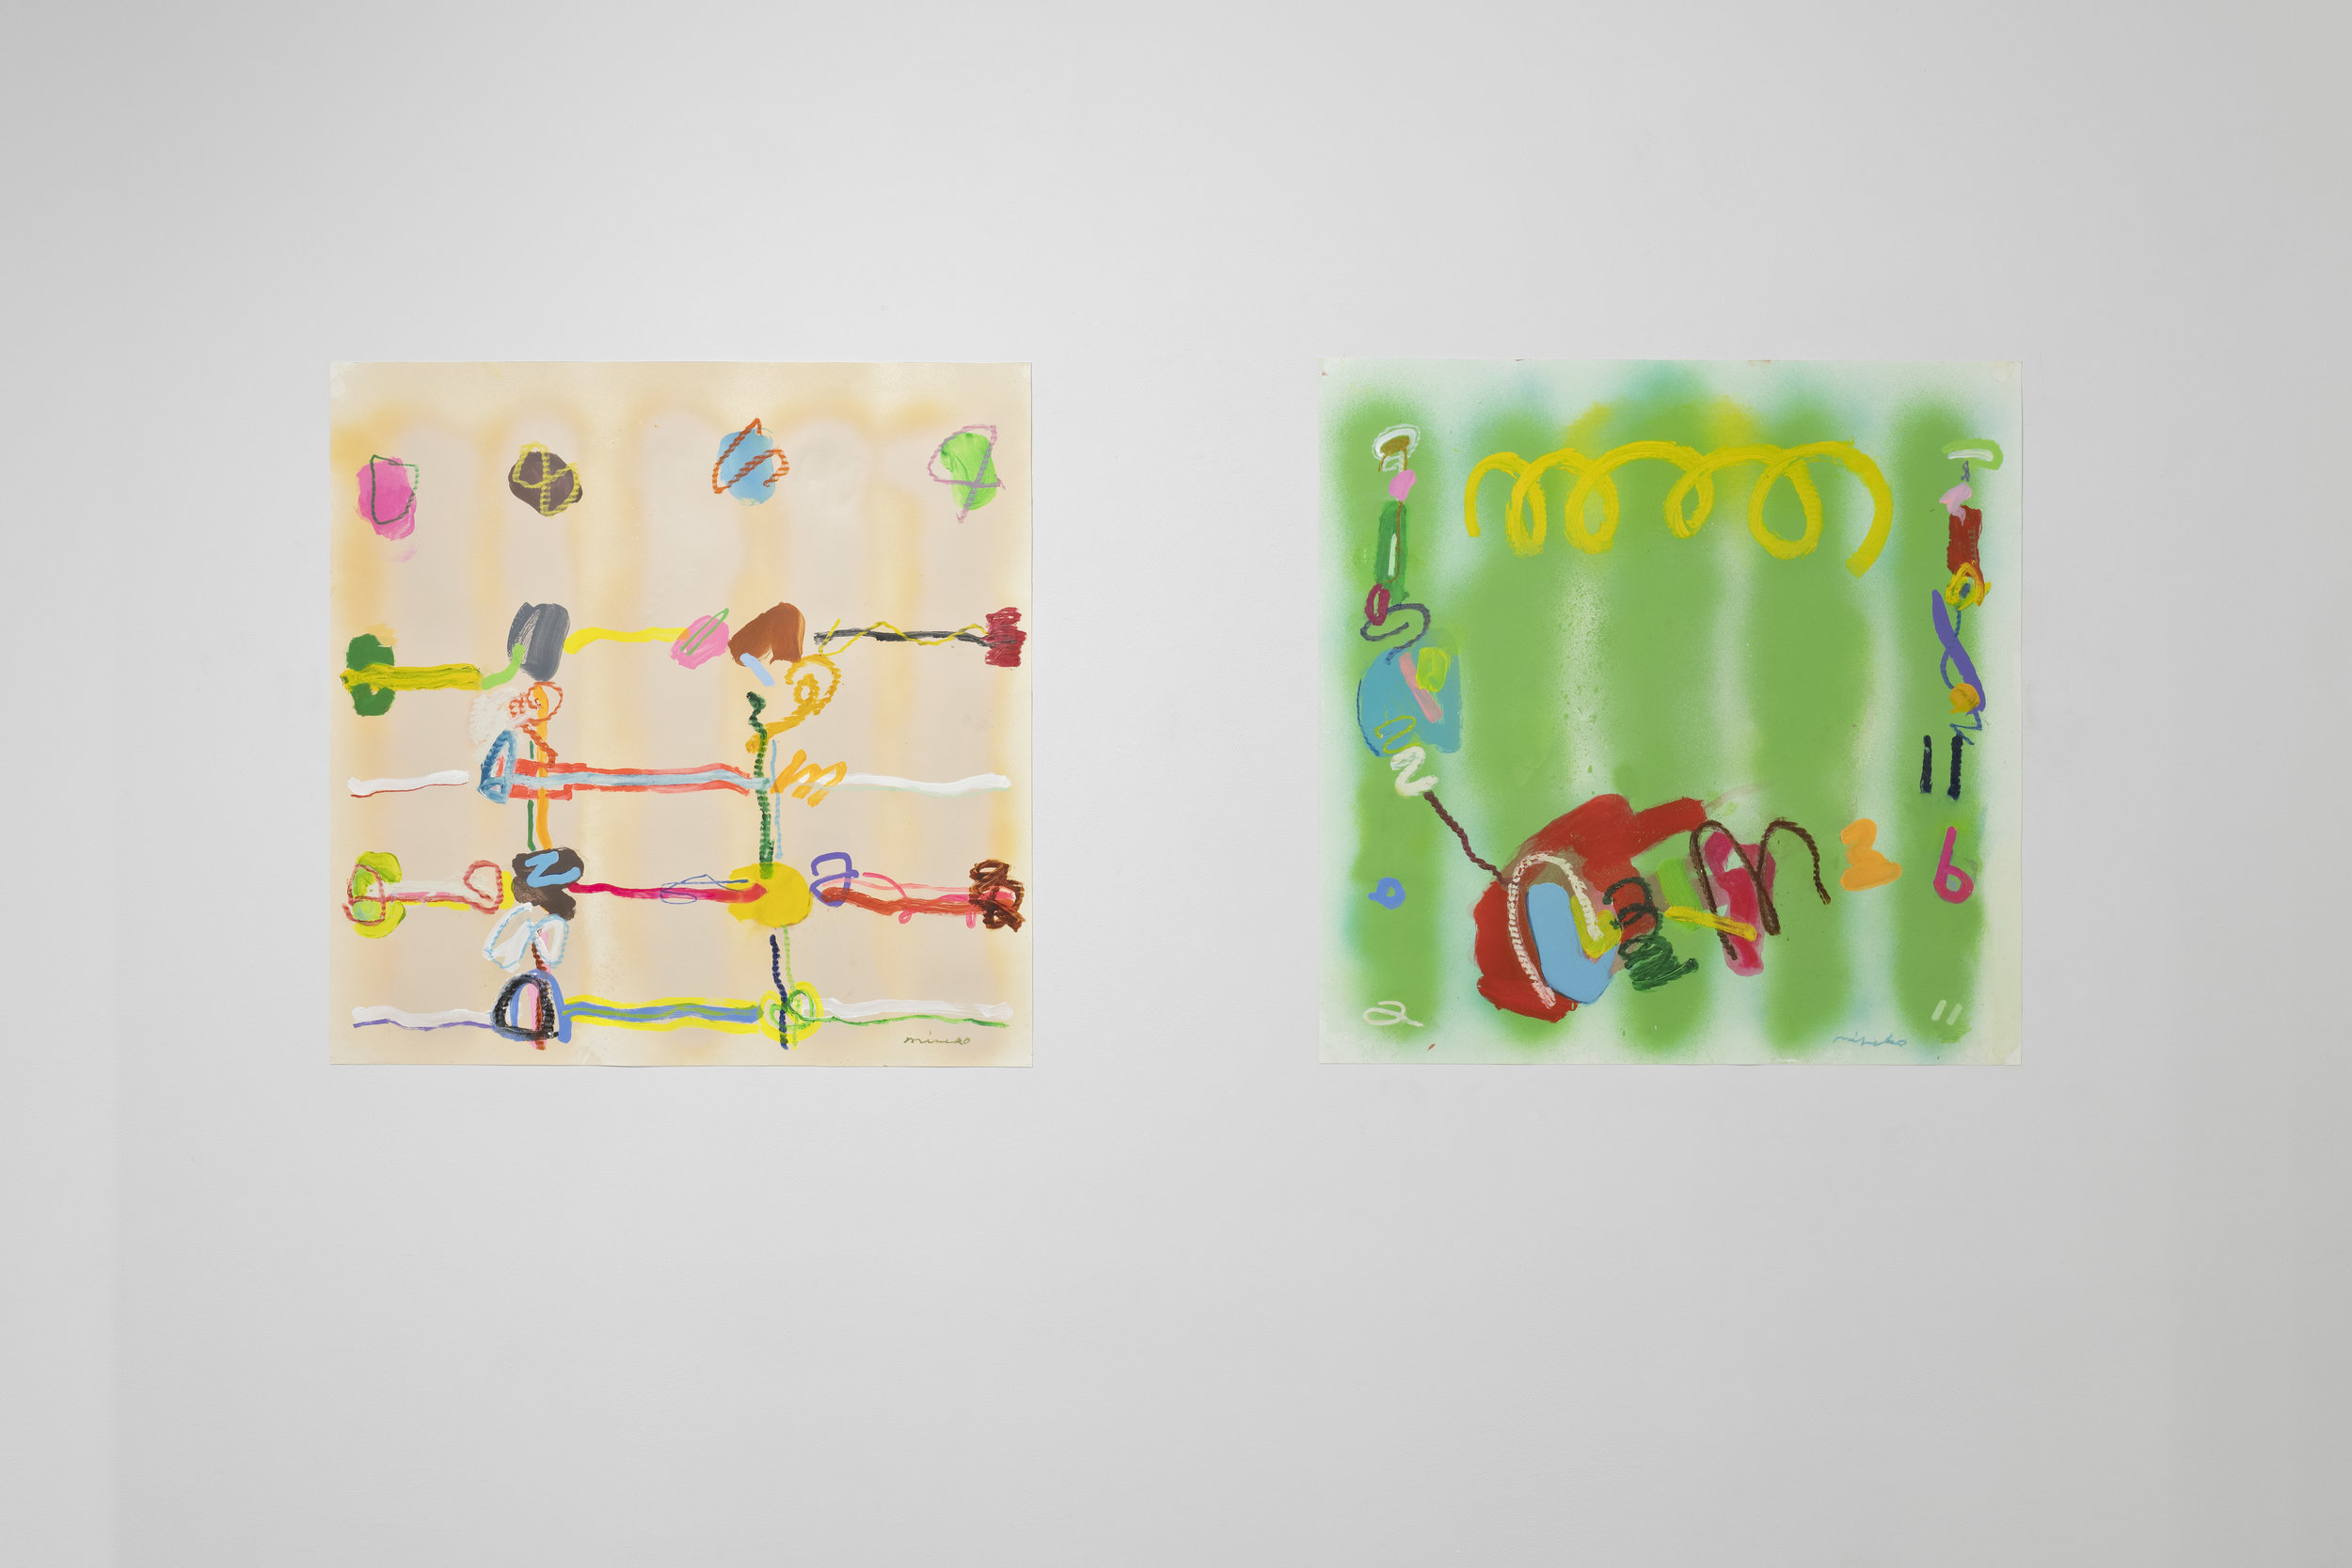 Rainbow Barbwire,  2017 (left)  30 x 30 in. Spray paint, acrylic, oil stick, and oil pastel on Yupo   Electric Filament   30 x 30 in. Spray paint, acrylic, oil stick, and oil pastel on Yupo